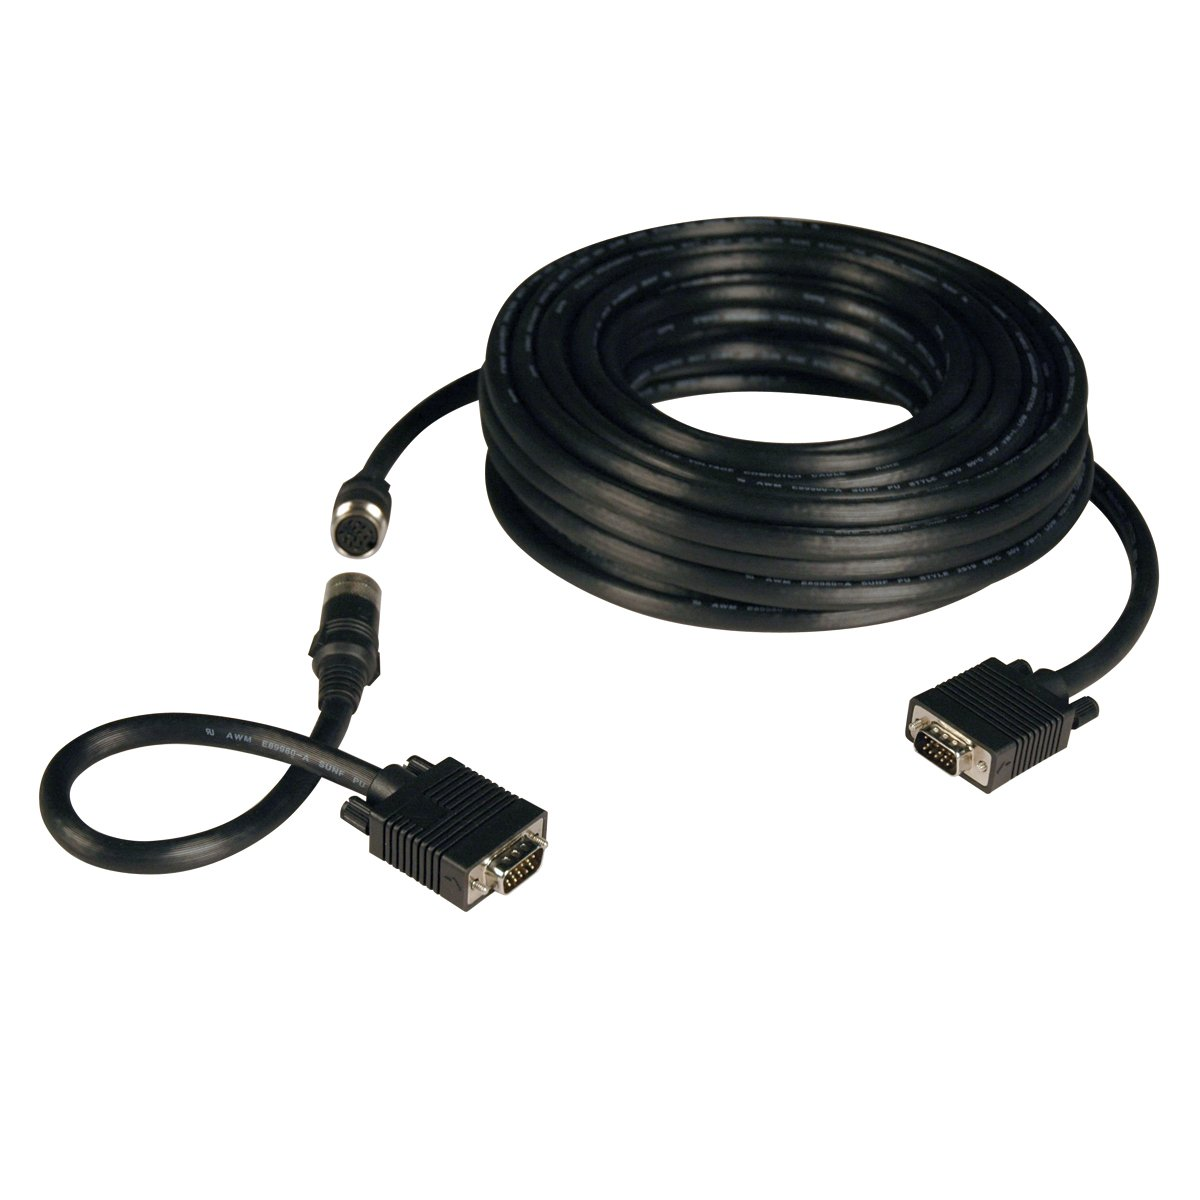 Tripp Lite P503-050 50 Feet SVGA EZ-Pull Gold Monitor Cable with RGB Coax, HD15M/M